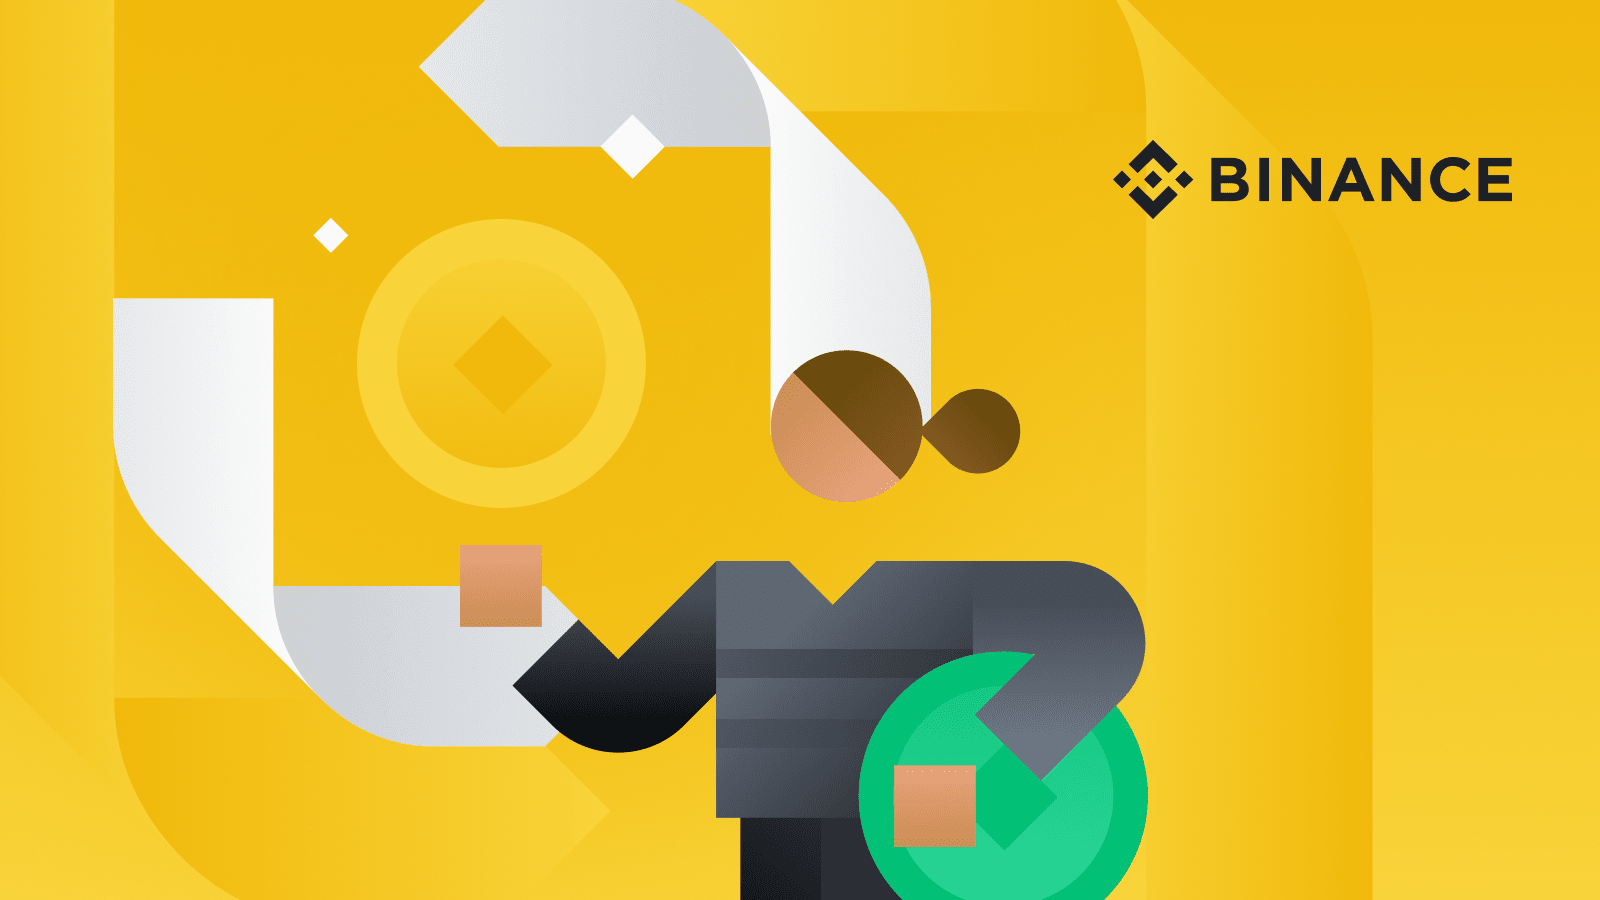 Binance Convert: Making Crypto Transactions Quick and Easy for AllCryptocurrency Trading Signals, Strategies & Templates | DexStrats